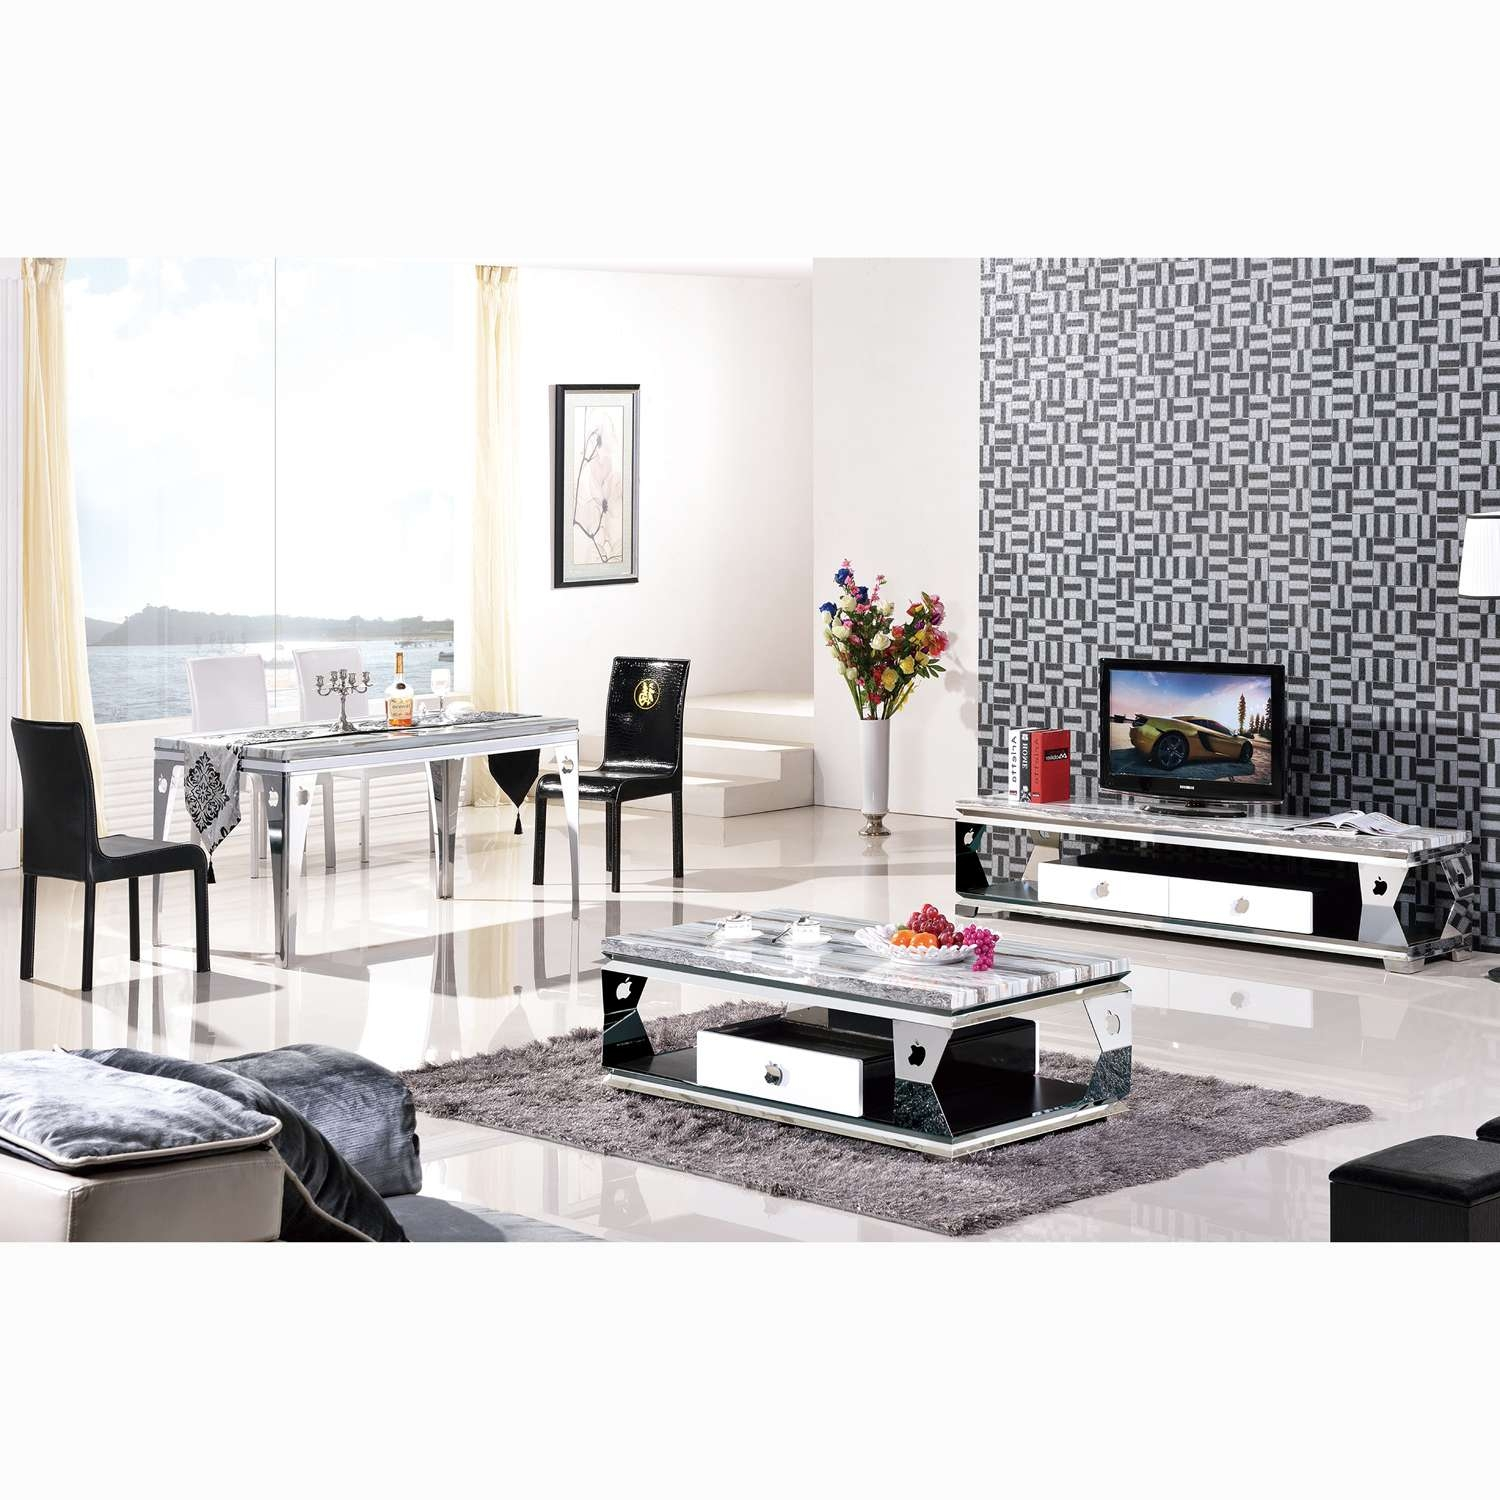 Coffee Table : Best Of Tv Unit And Coffee Table Sets Stirring Throughout Tv Cabinets And Coffee Table Sets (View 10 of 20)